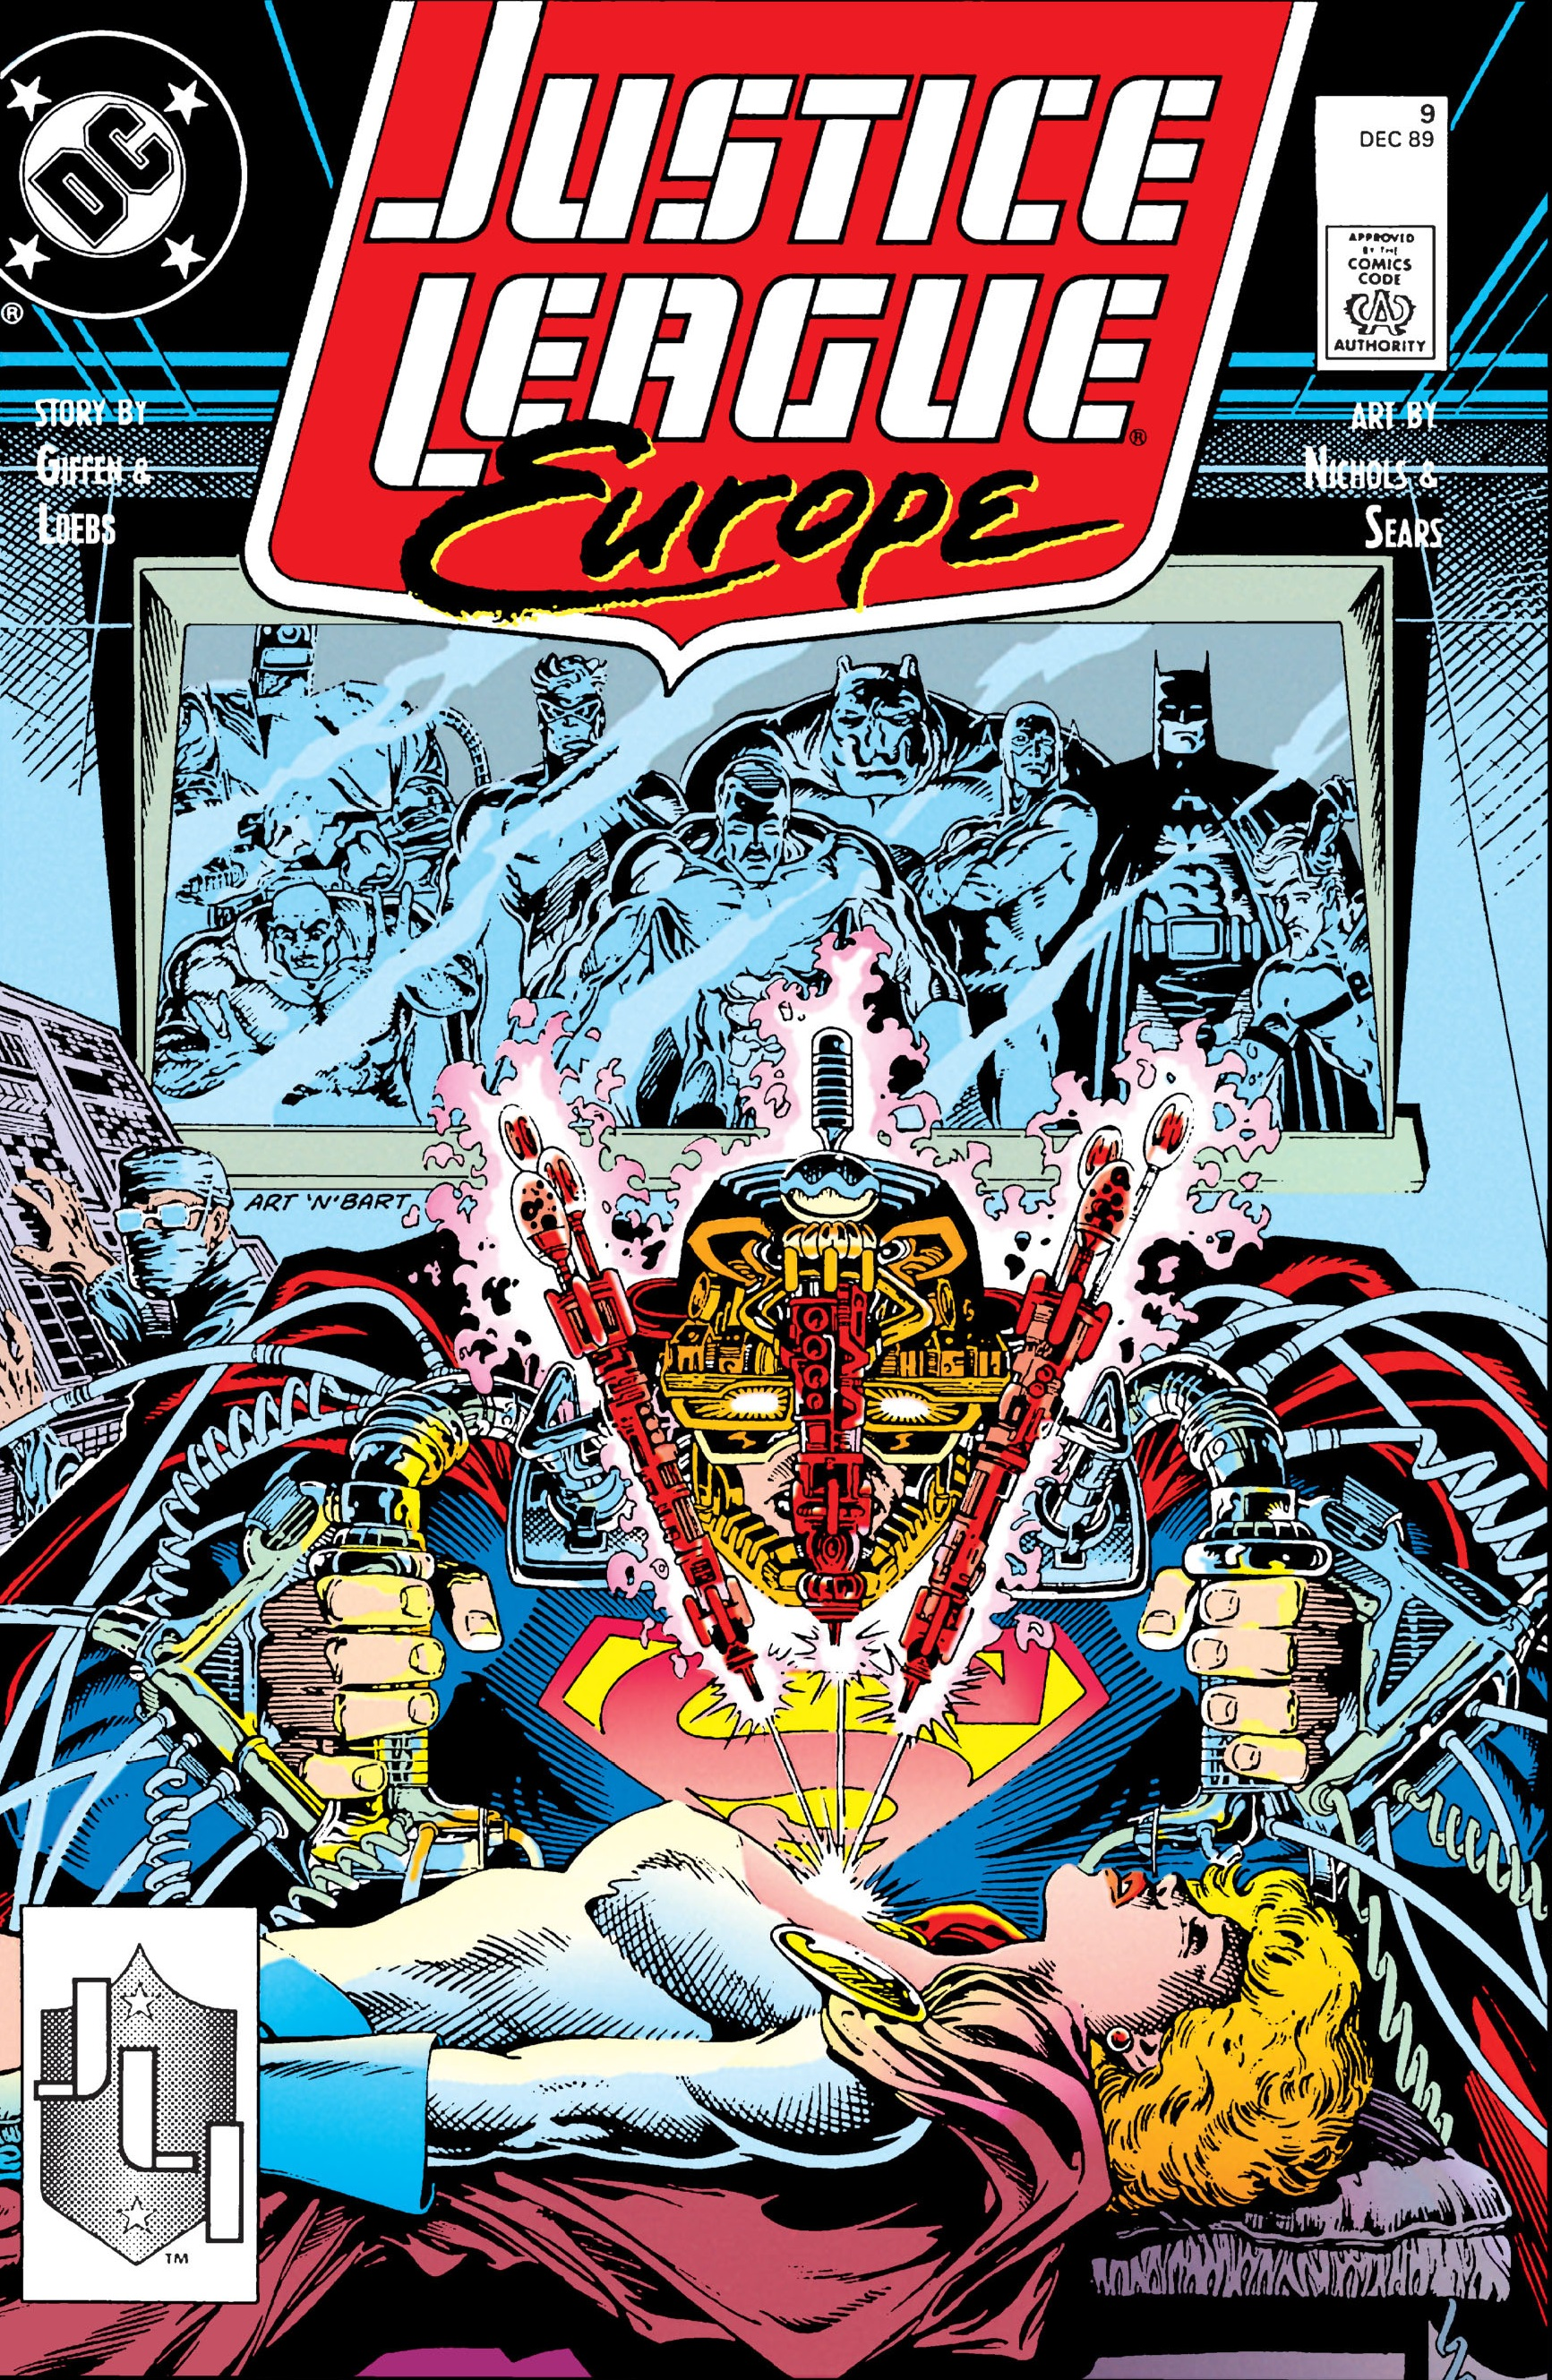 Justice League Europe Vol 1 9